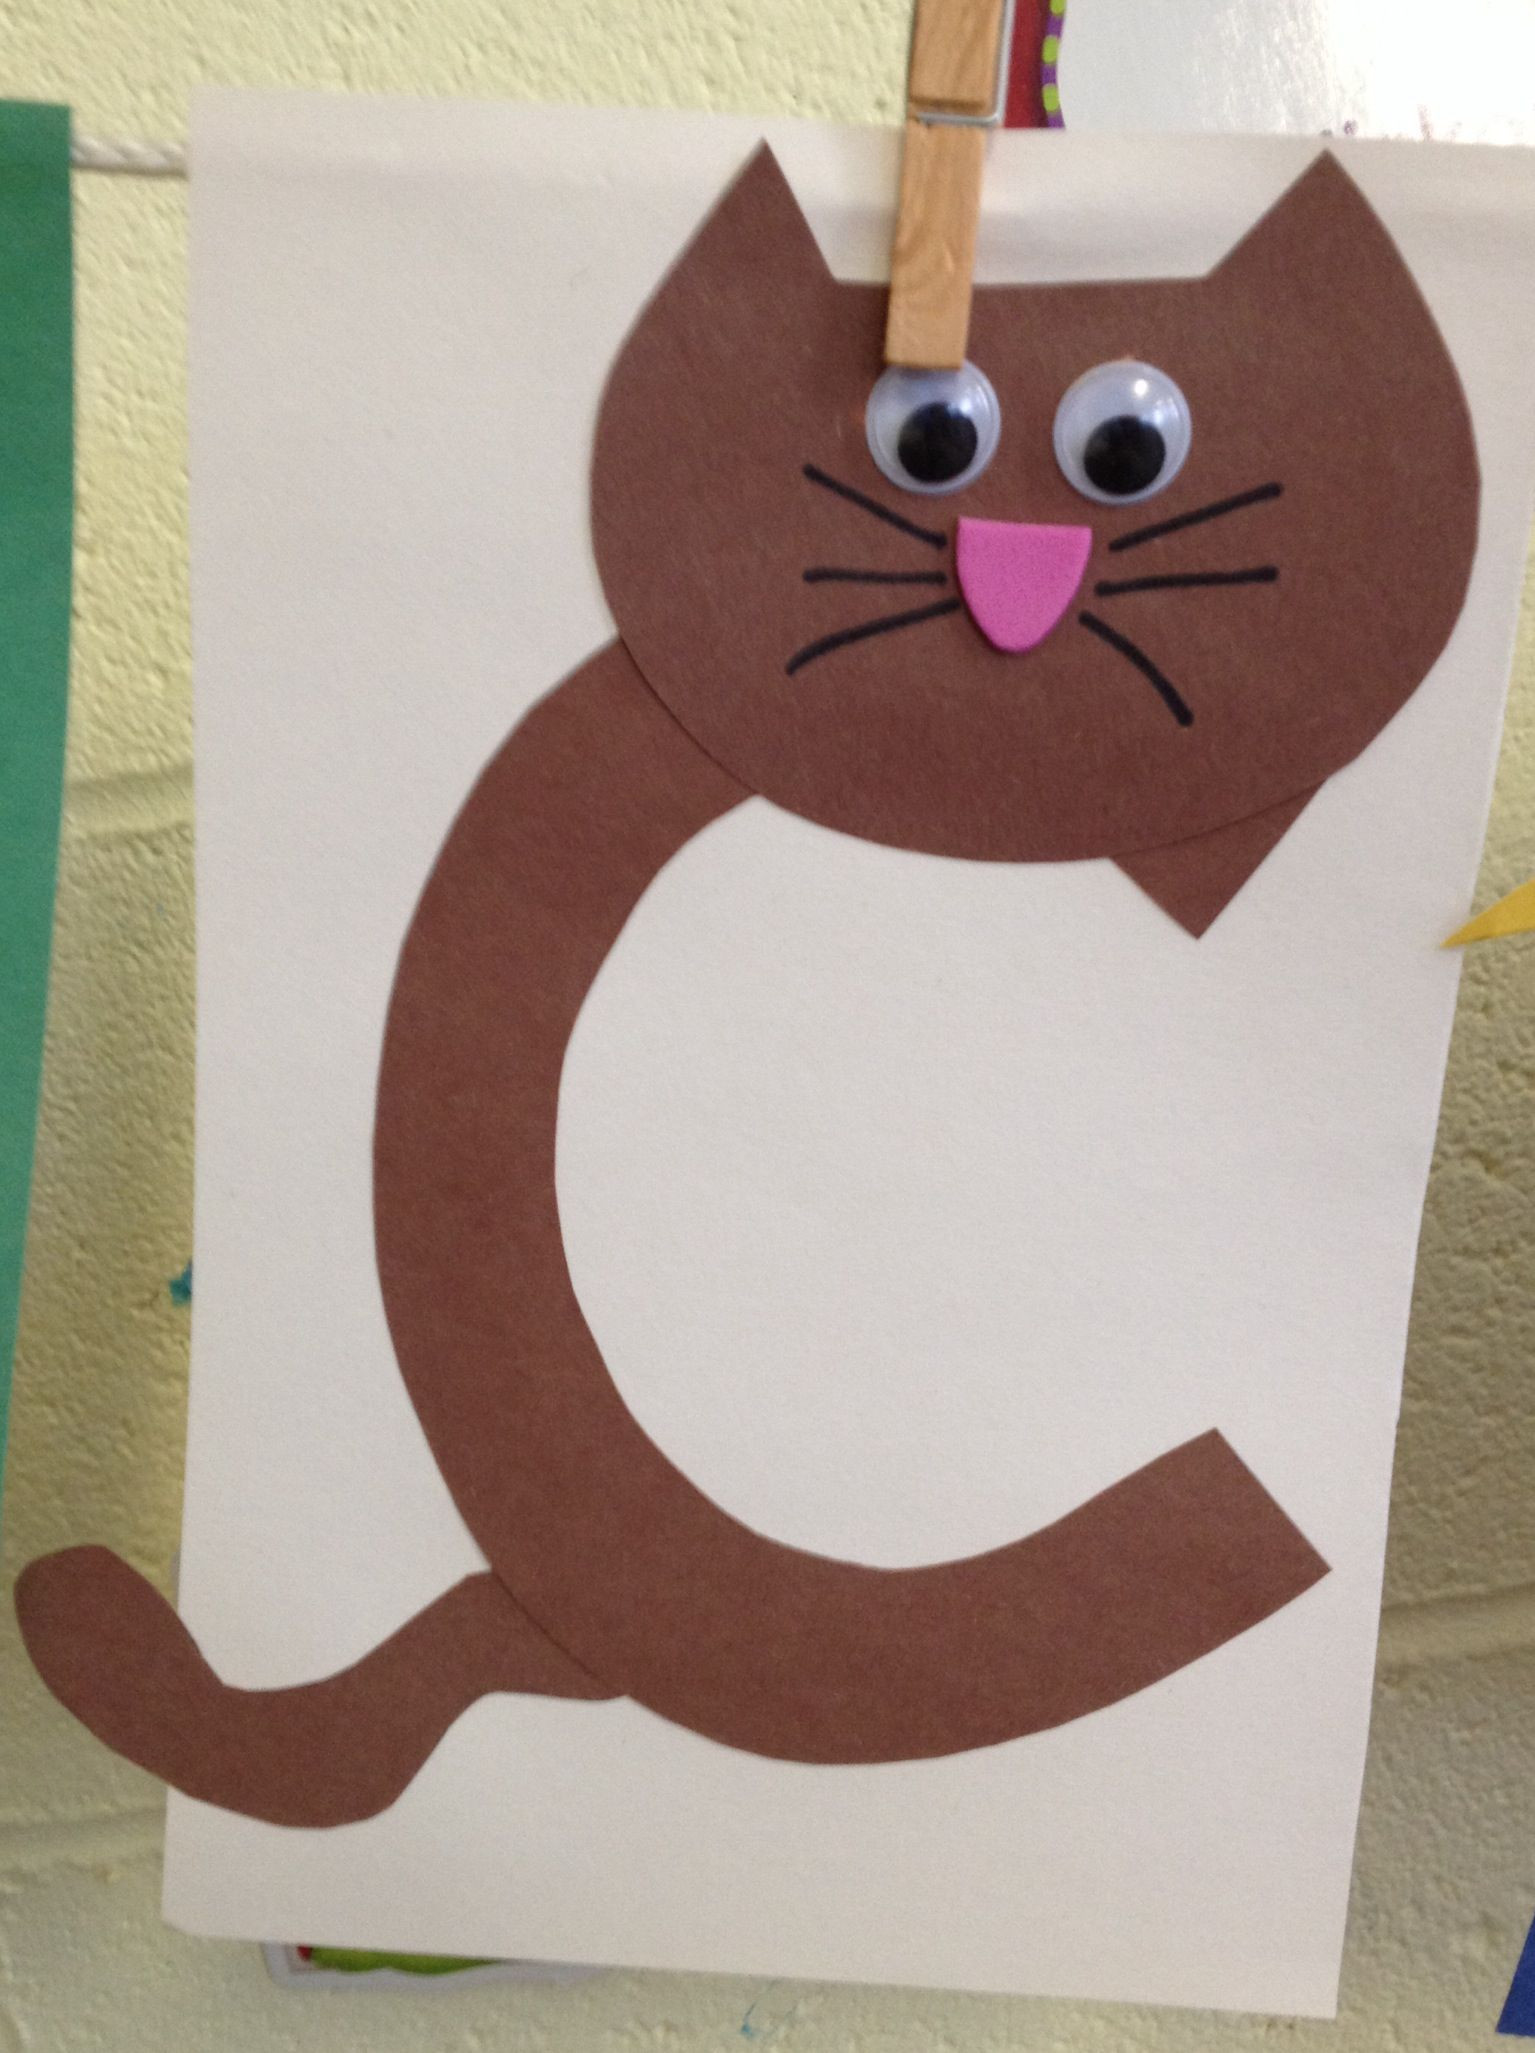 Best ideas about Preschool Arts And Craft . Save or Pin Preschool Letter C craft Now.